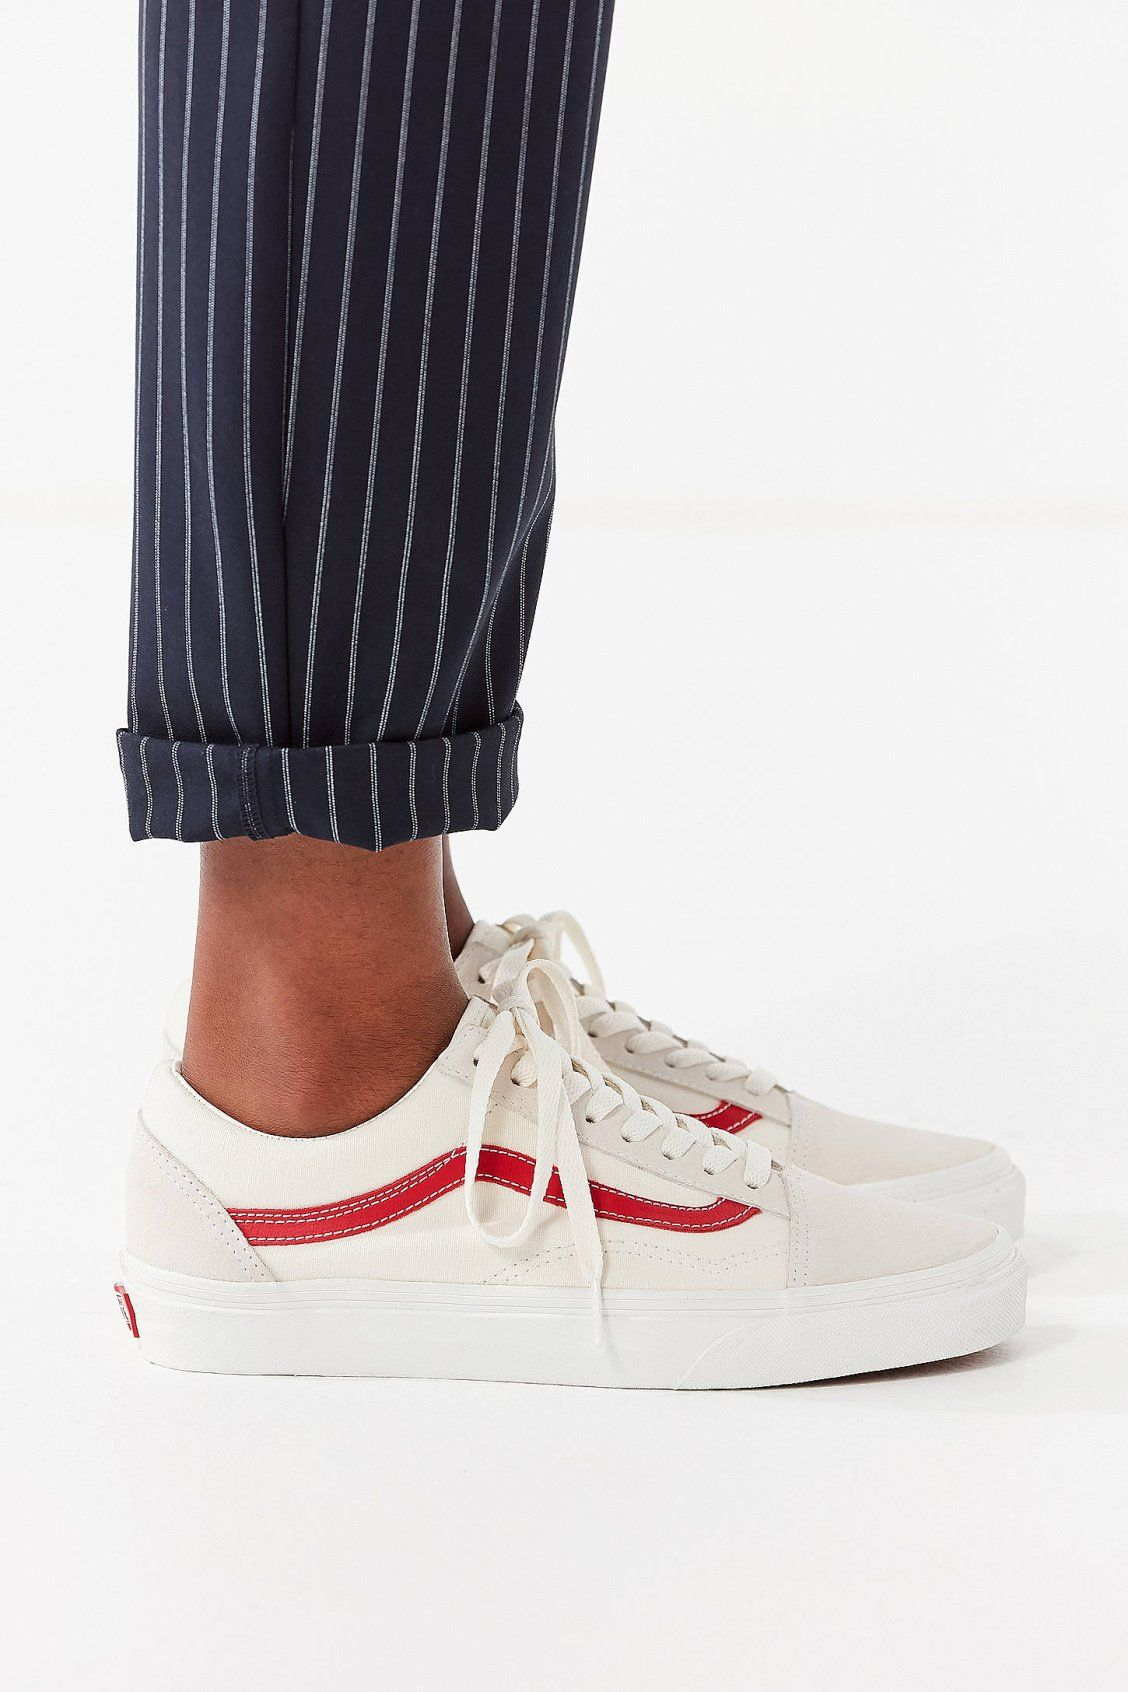 Vans Old Skool True White Trainers | Urban Outfitters FR